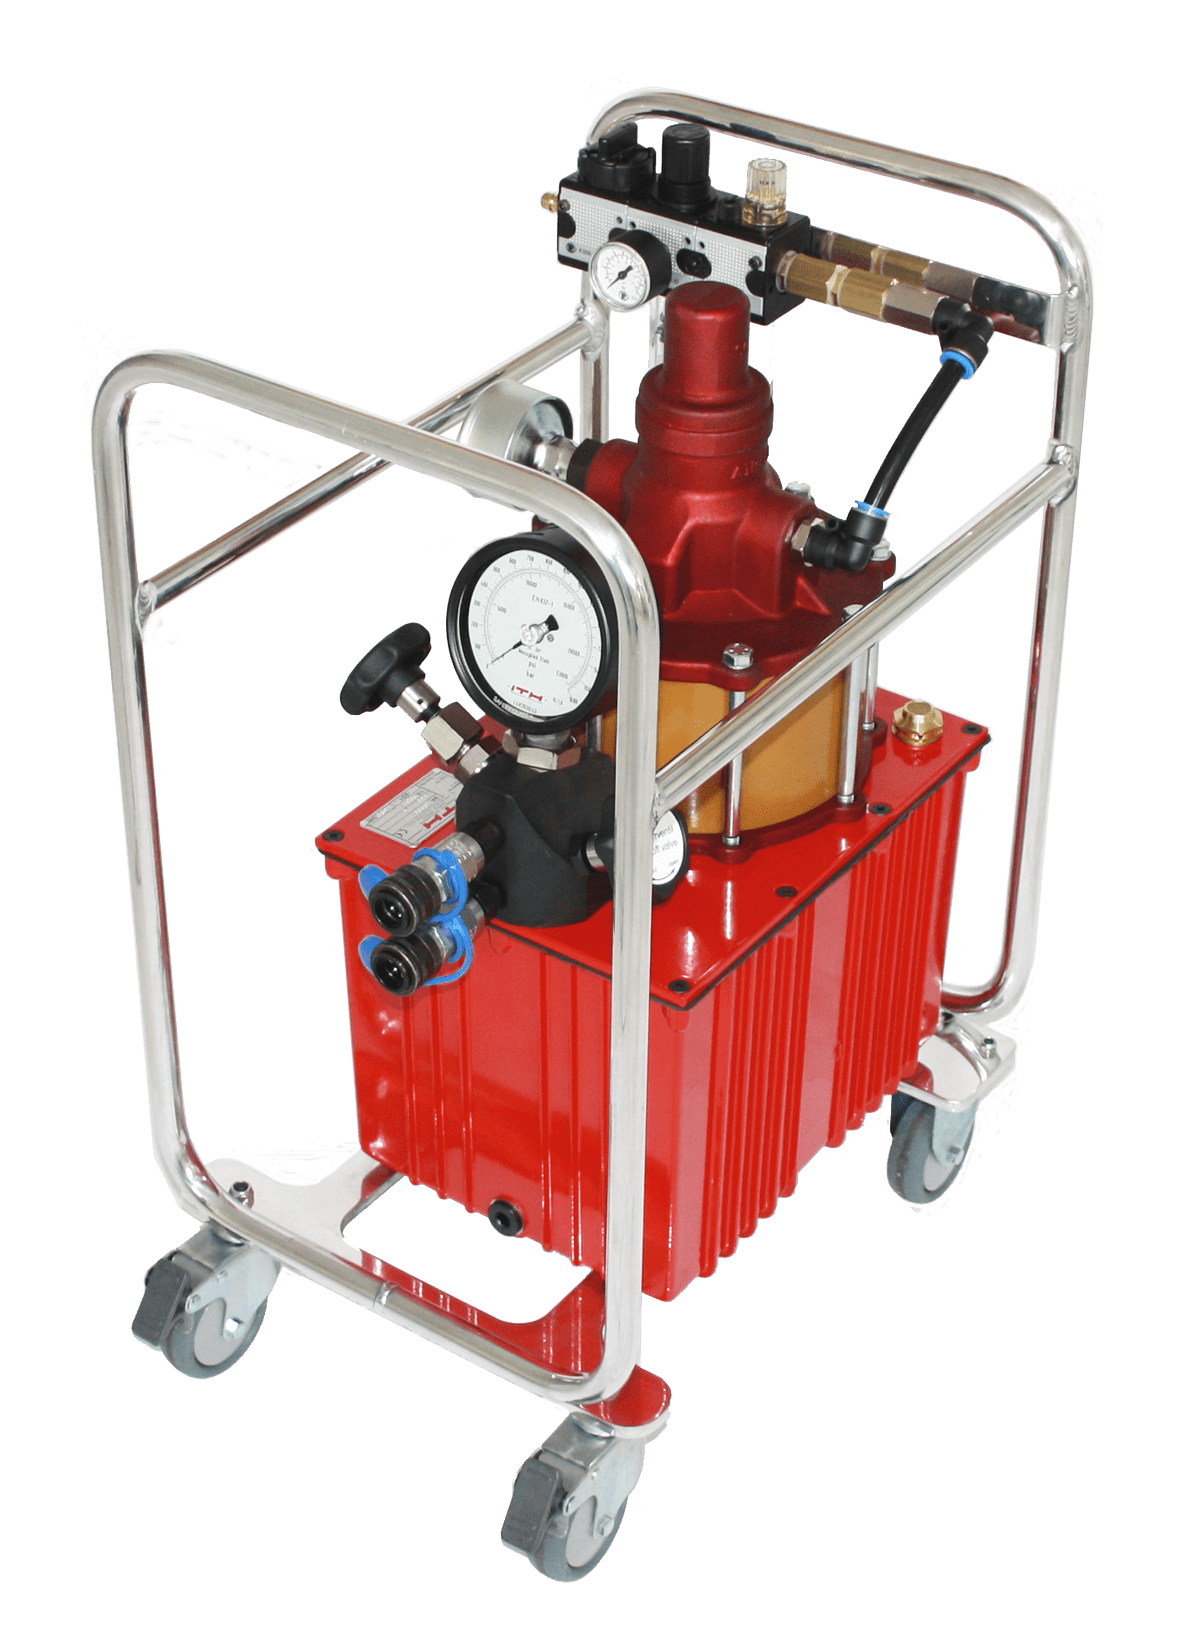 Pneumatic high pressure hydraulic pump -hydraulic unit ITH Aero-MAX 9